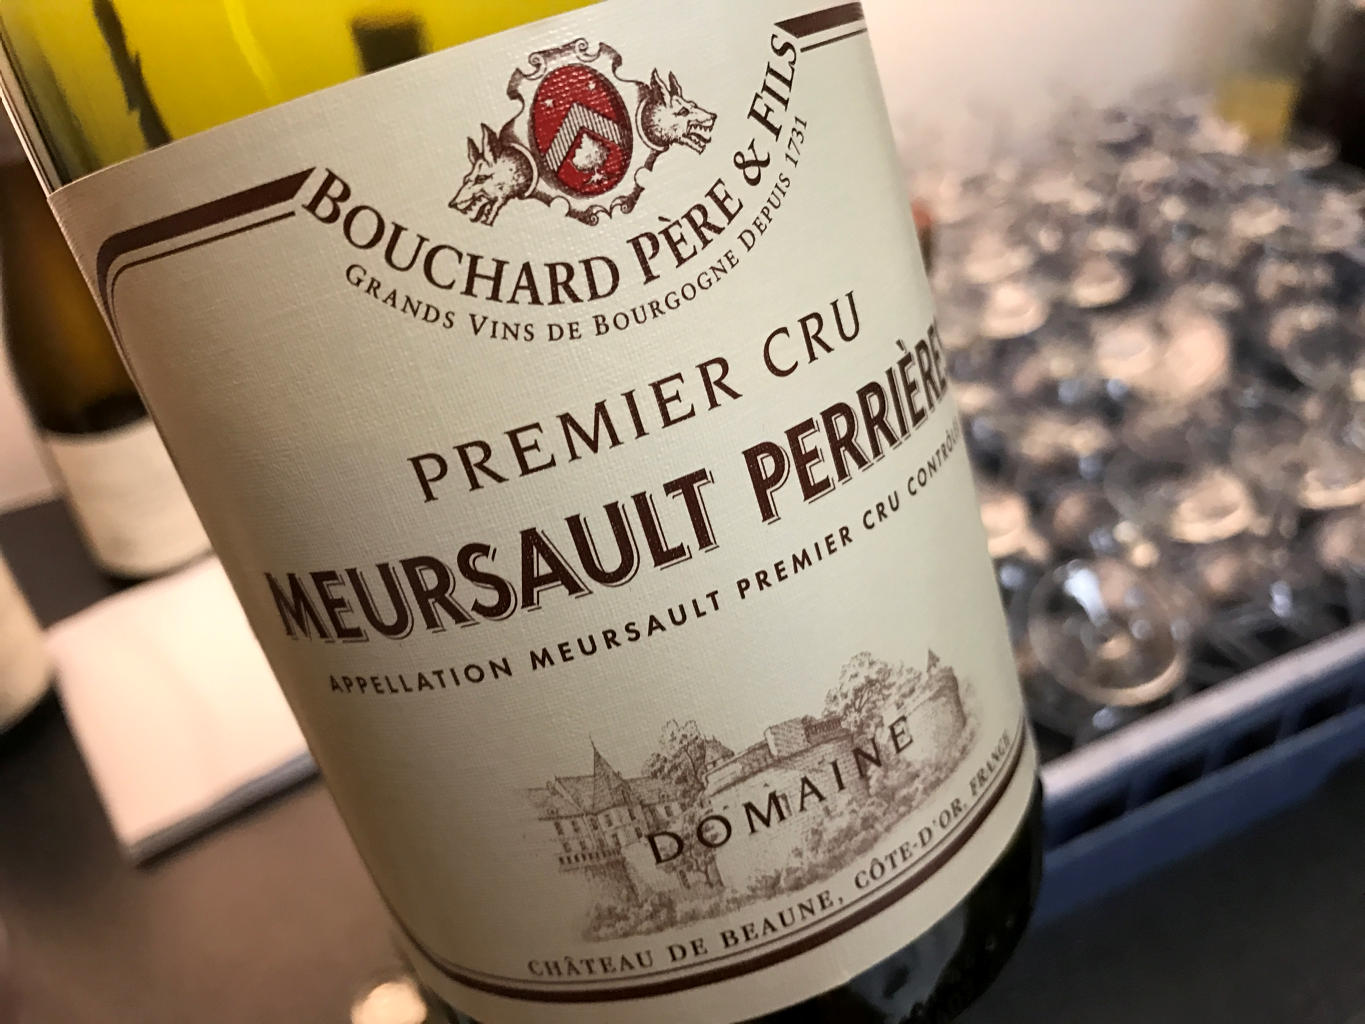 Boucchard perrieres